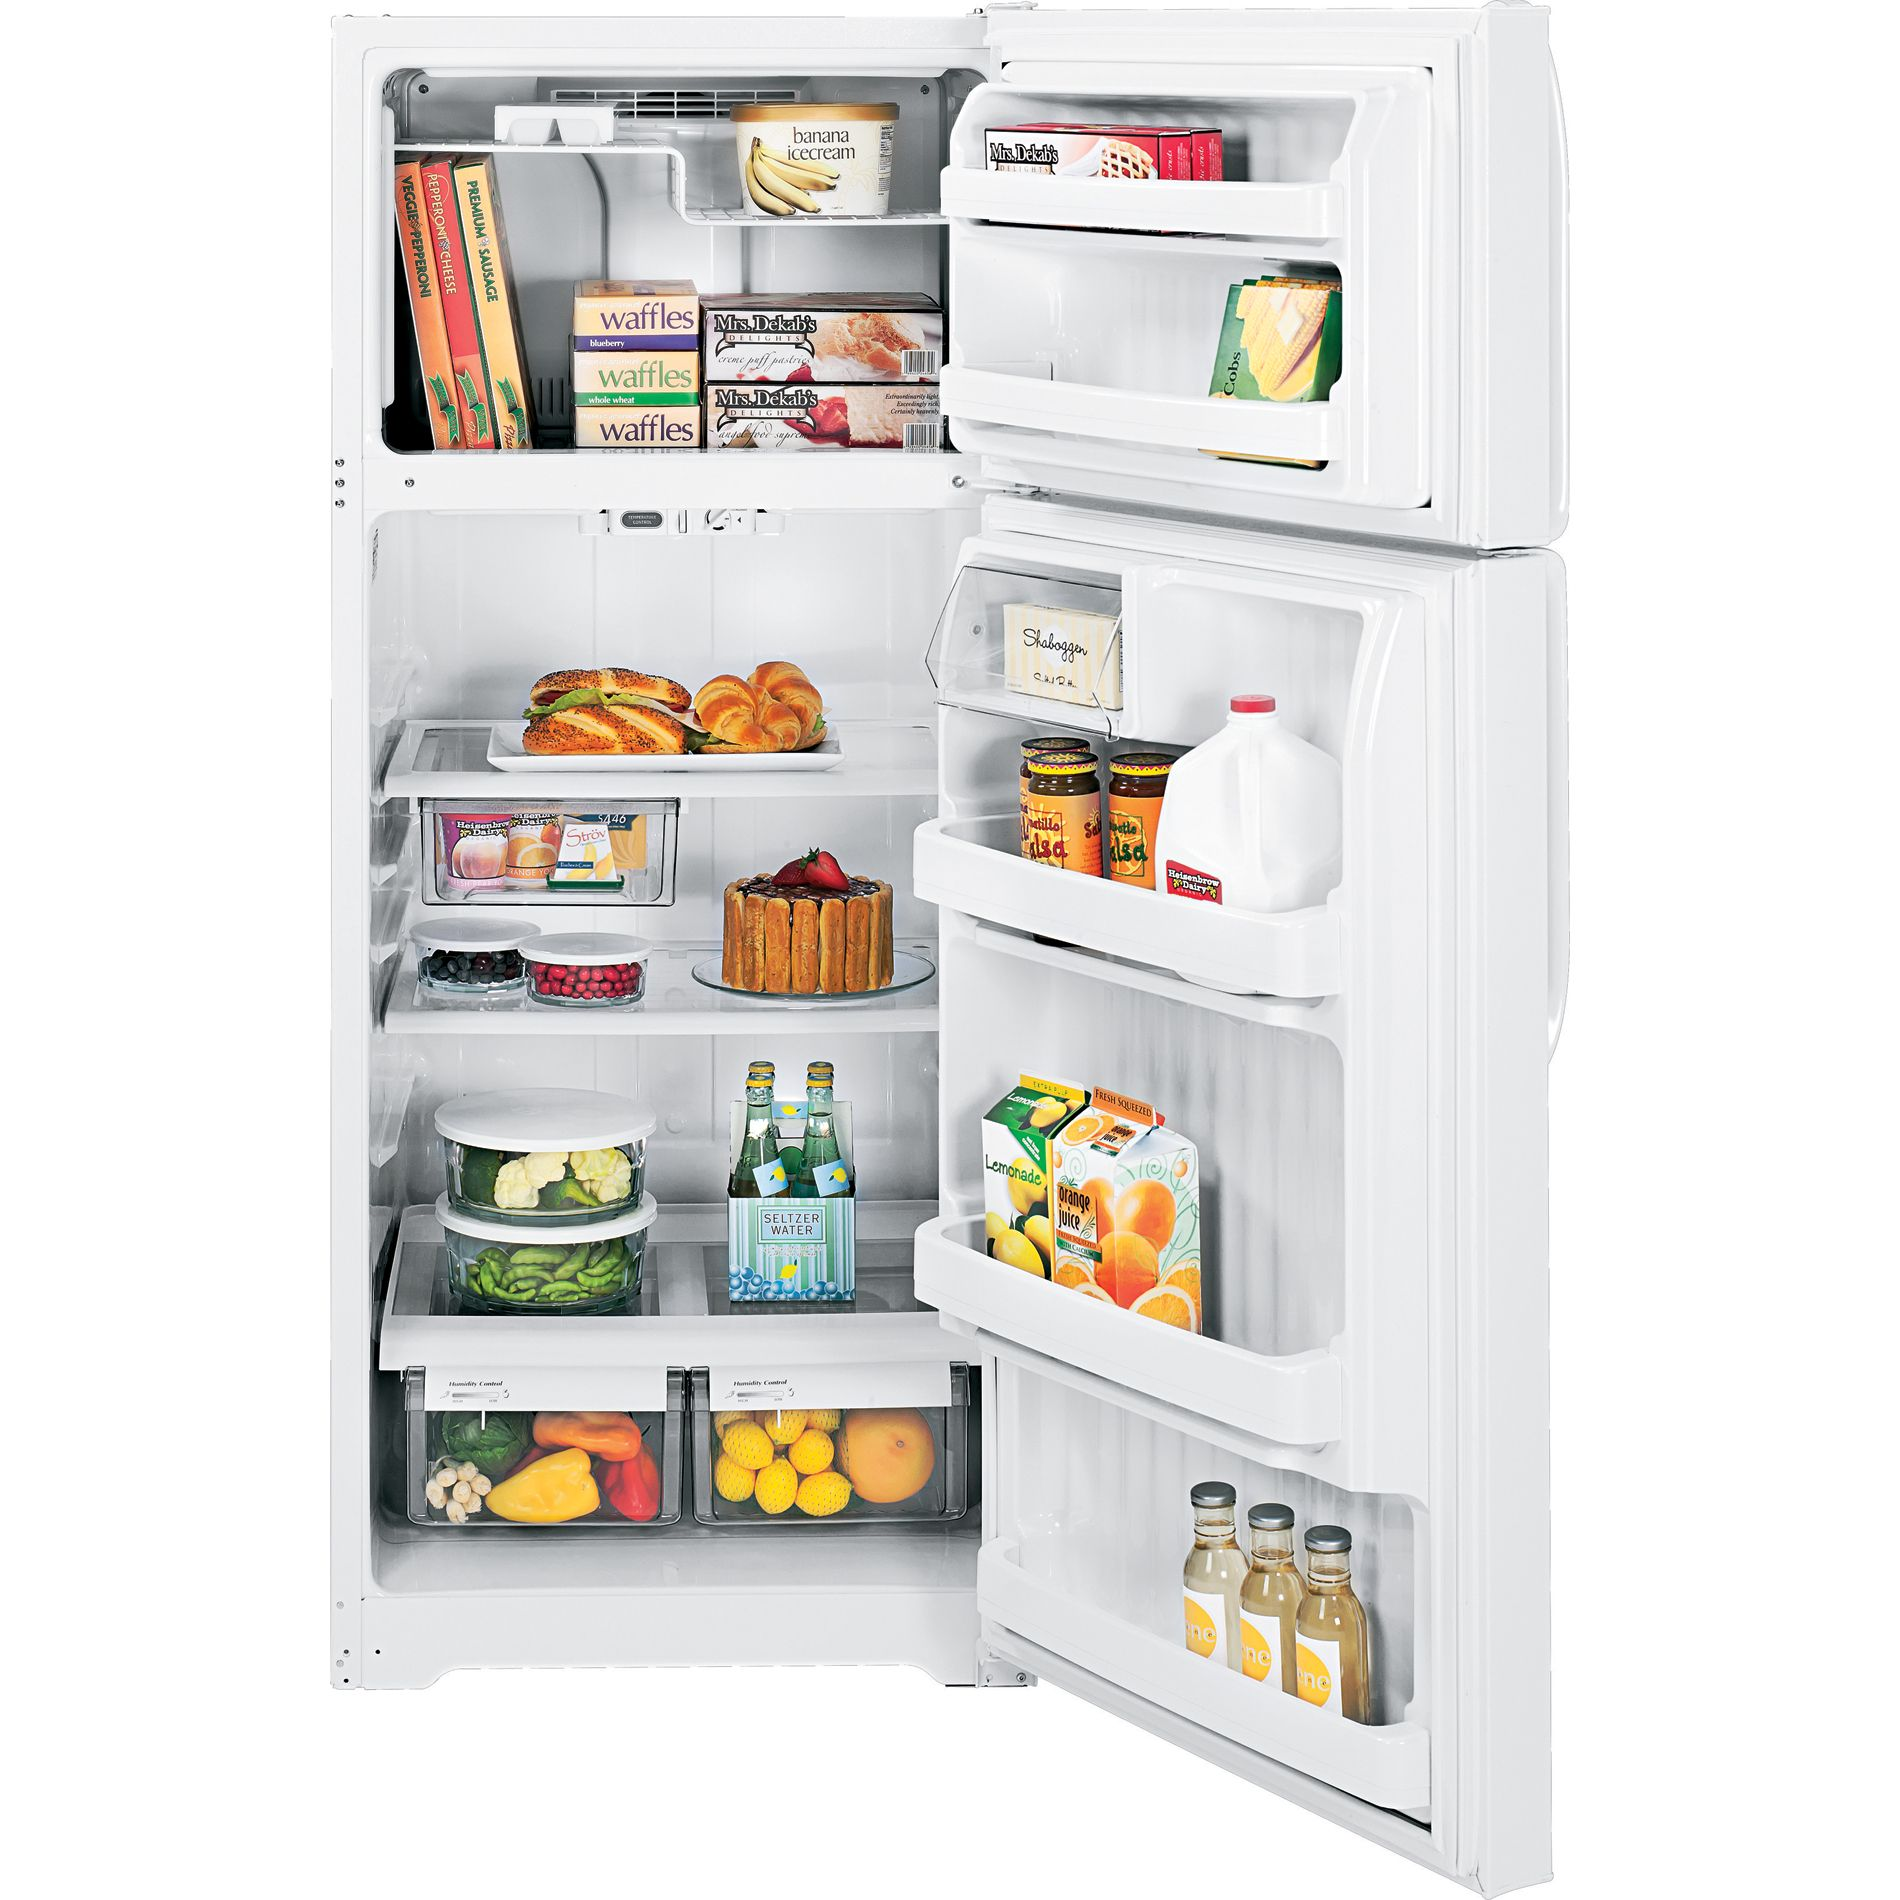 GE 18.1 cu. ft. Top Freezer Refrigerator - White